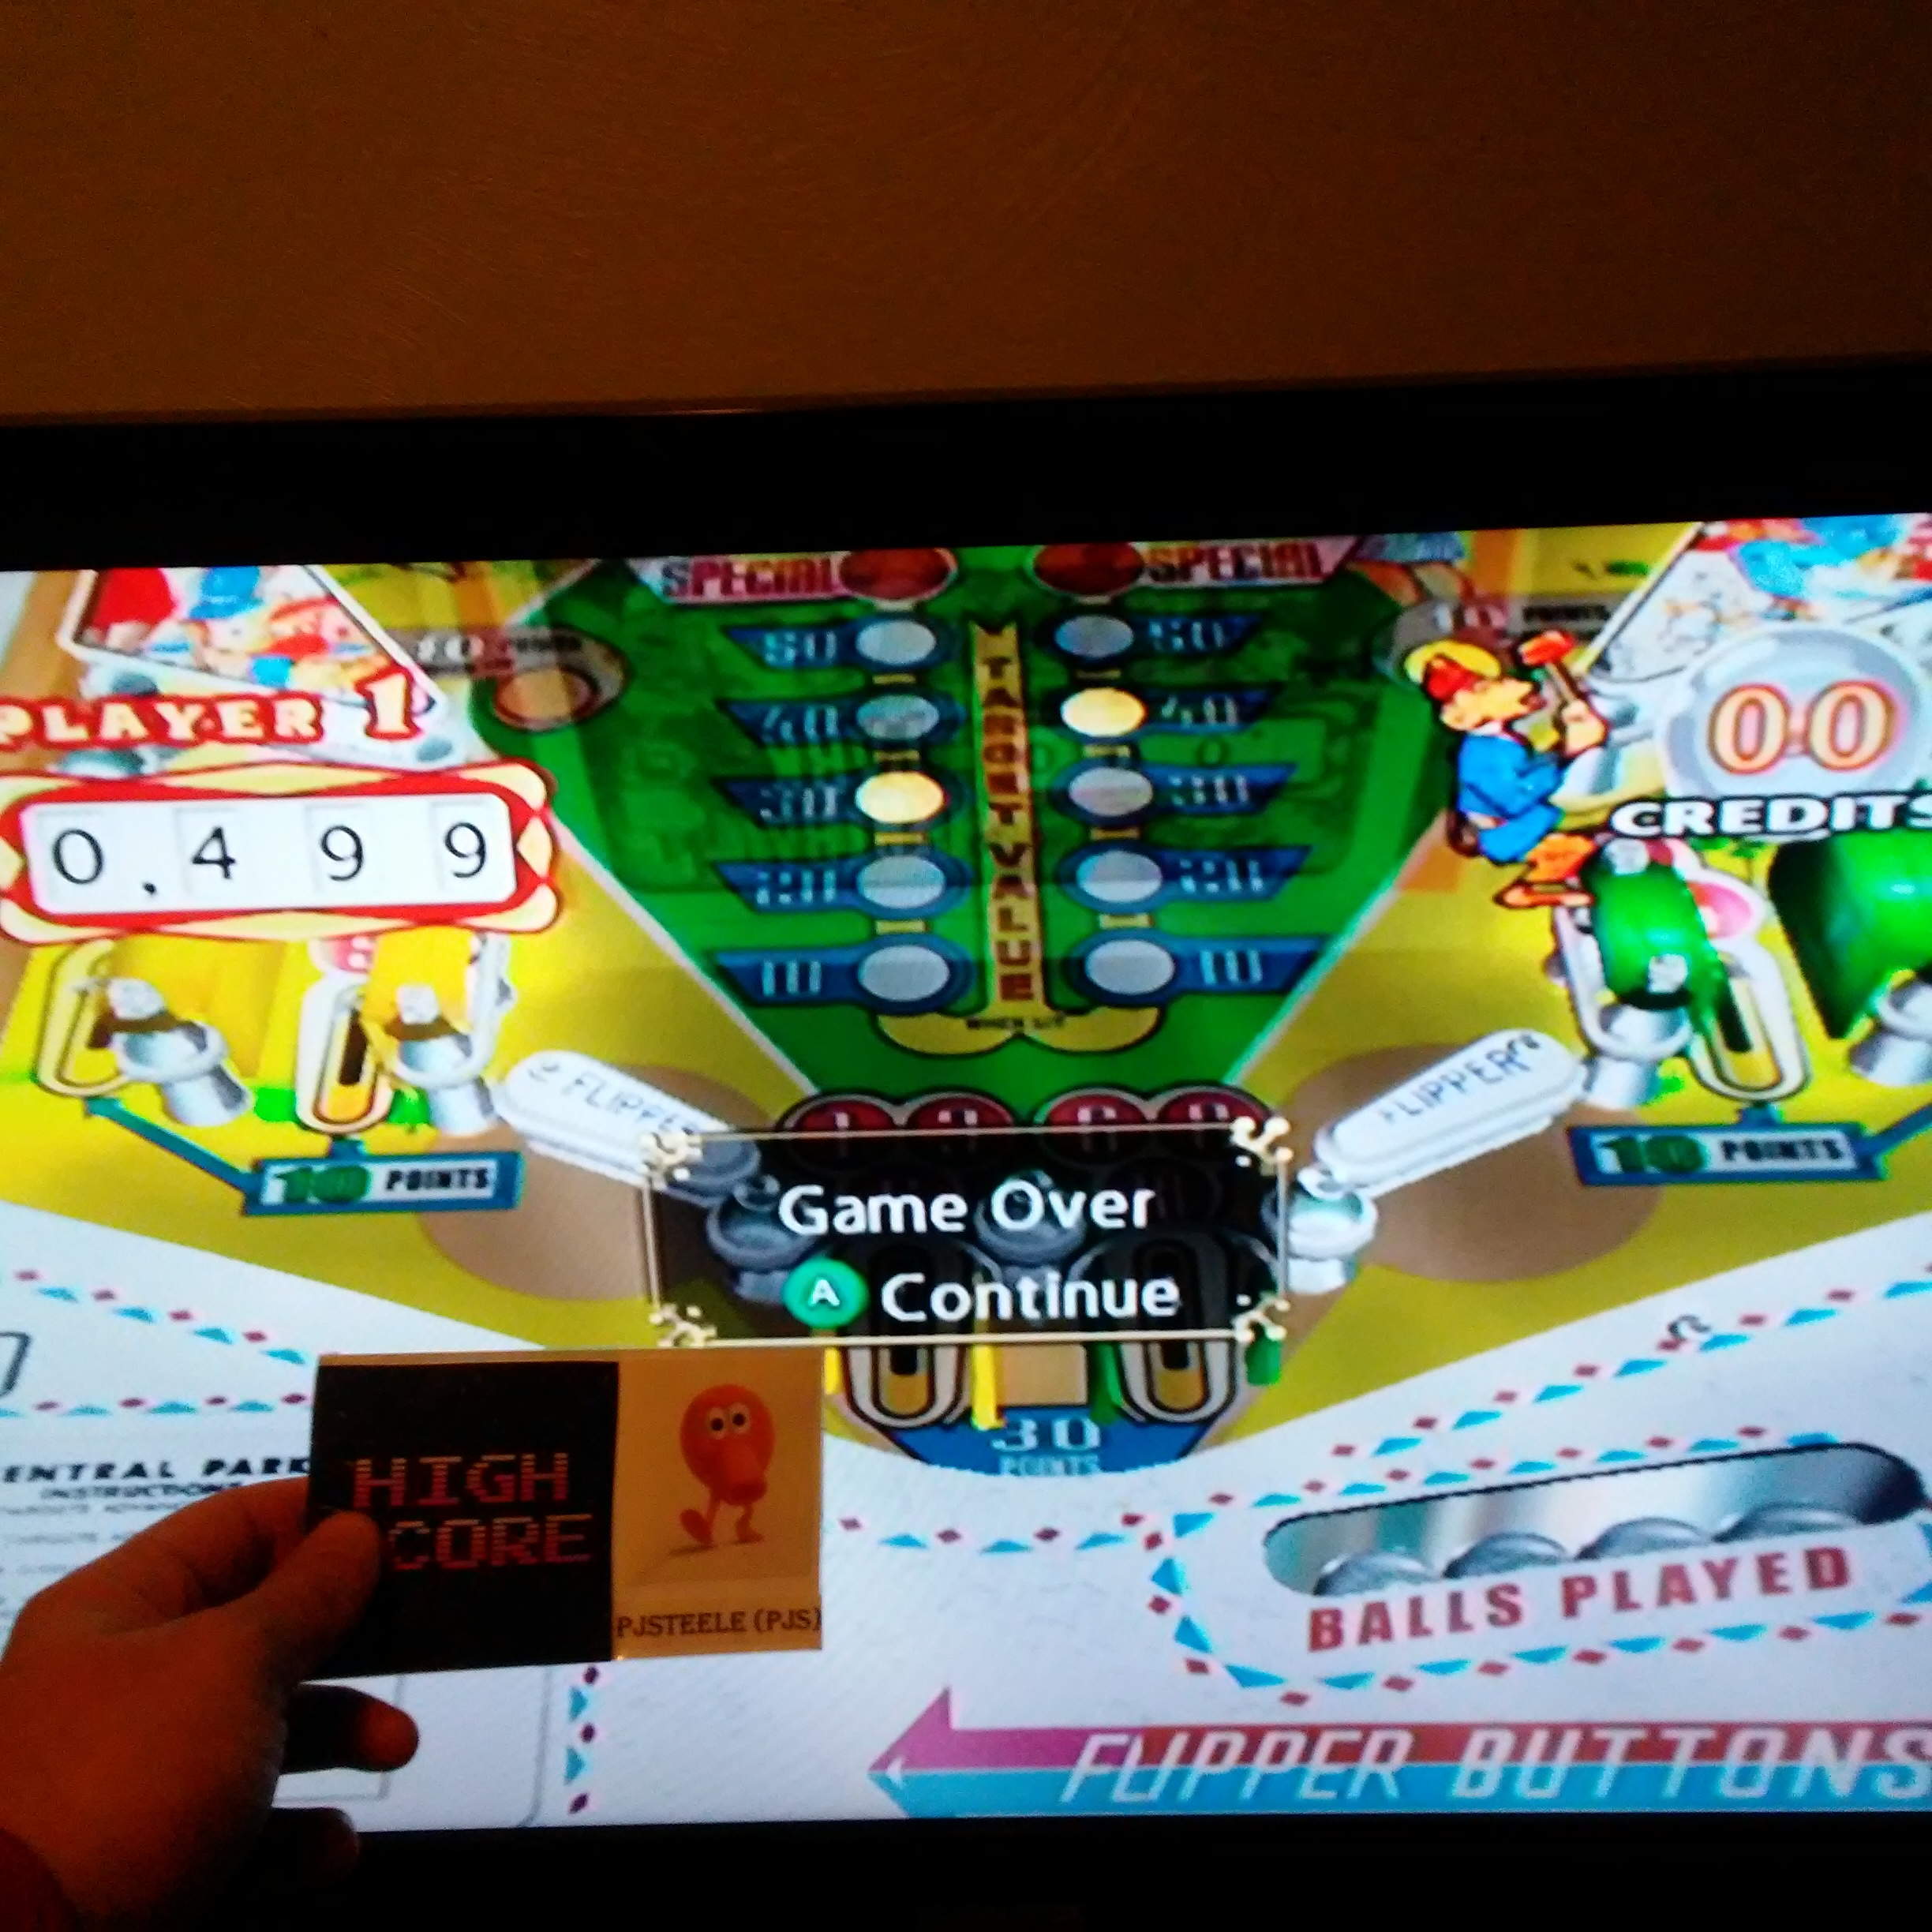 Pjsteele: Pinball Hall of Fame: The Gottlieb Collection: Central Park [5 Balls] (GameCube) 499 points on 2018-01-17 20:00:17